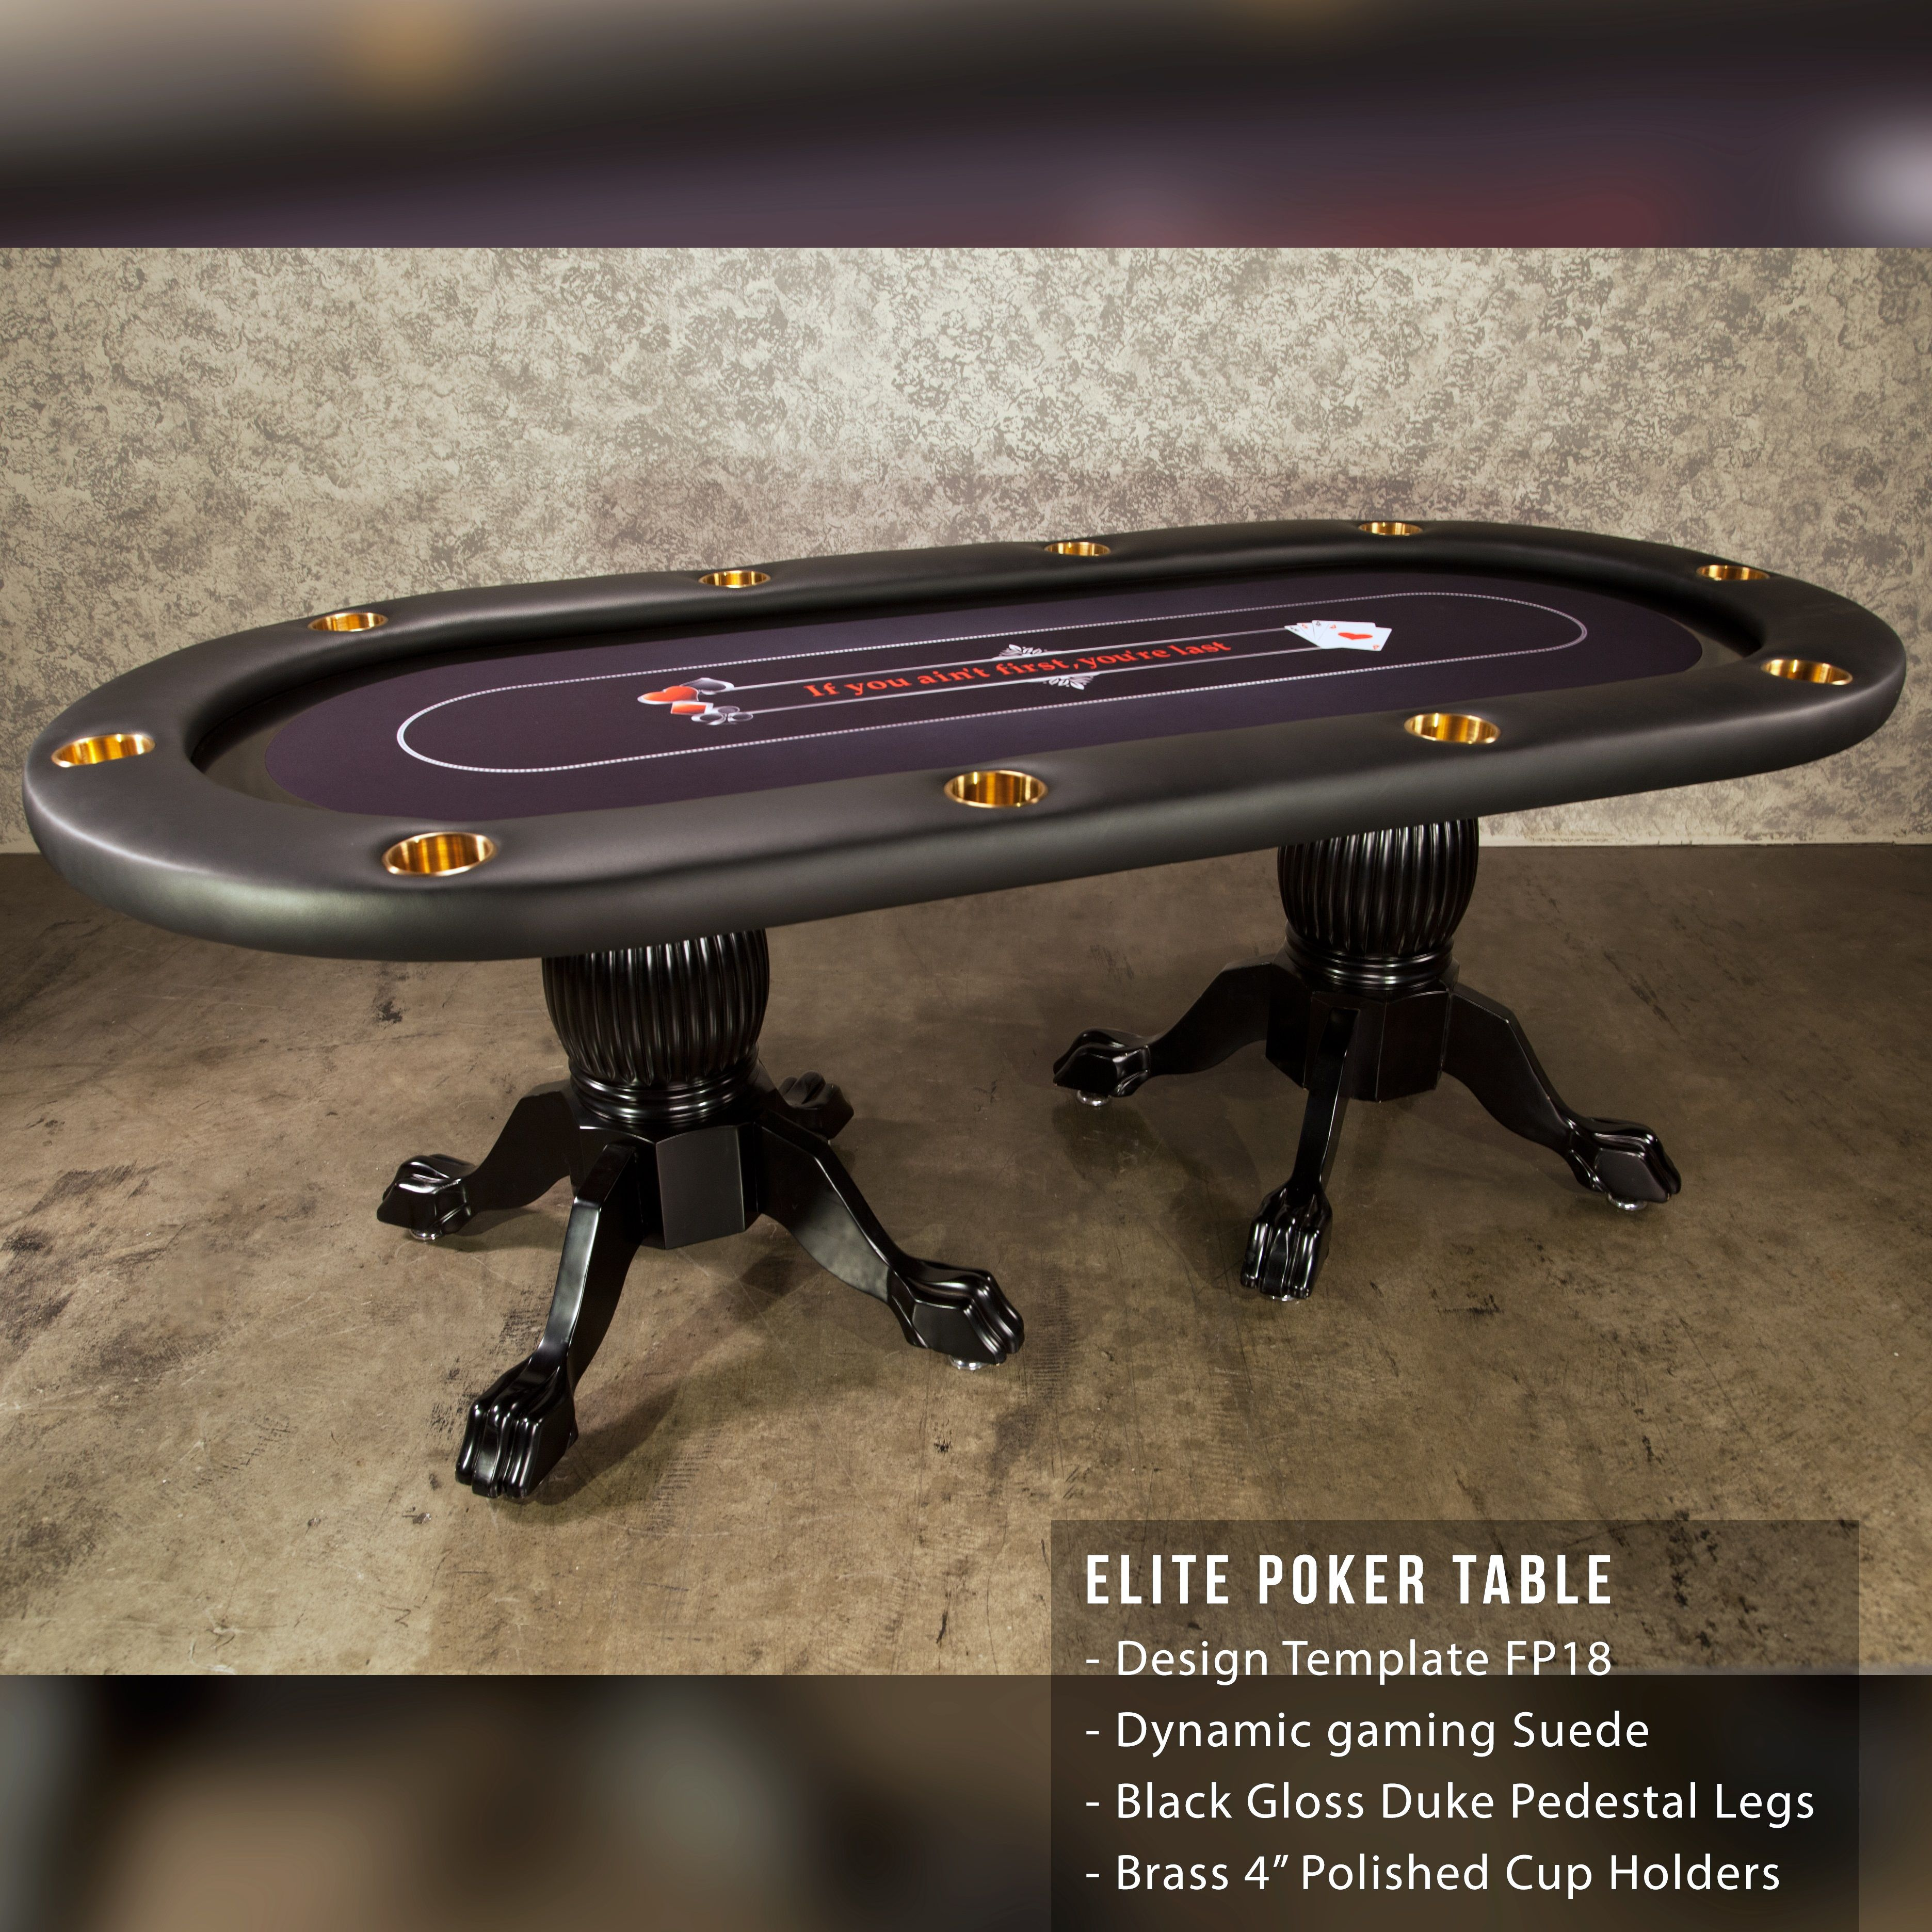 The Elite Poker Table Is Great If You Re Looking For Traditional Look In Your Poker Or Game Room Bbo Poker Tables Lets Poker Table Custom Poker Tables Poker